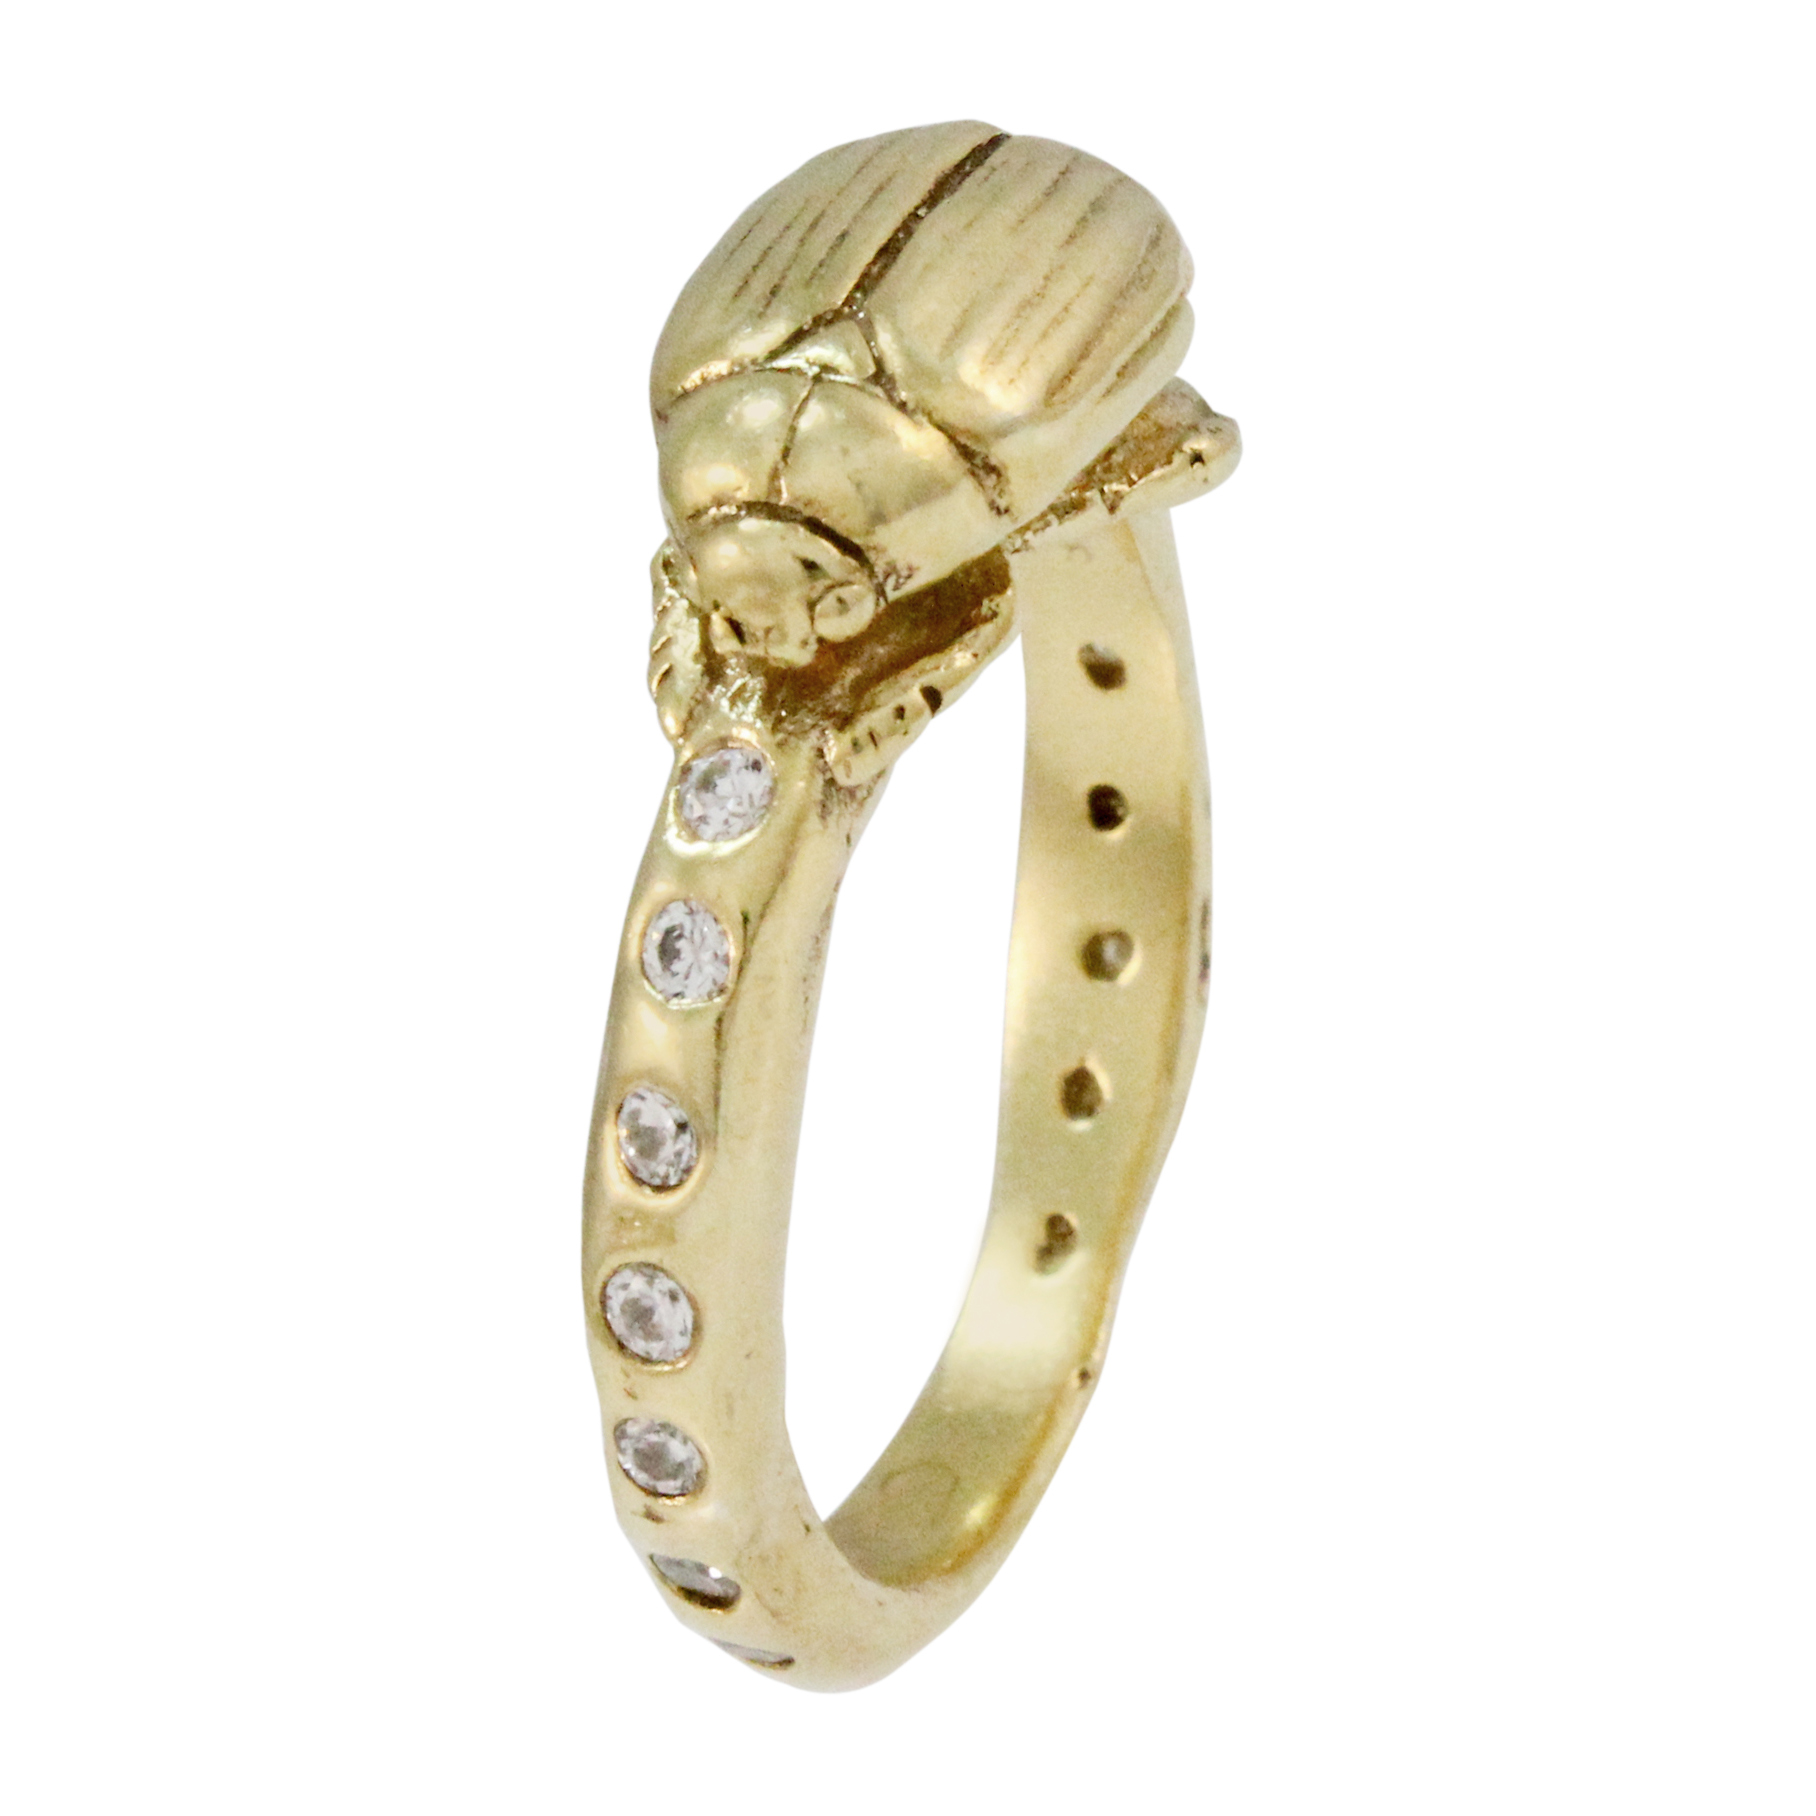 9ct Solid Yellow Gold Ring Swiss Set withDiamonds    Beetle - 13 x 8mm, Band width approx 3.5mm  14 Diamonds with a total of 0.42cts    Please see our info page for more details on sizing  *Please note that this piece is made to order and takes a minimum of 14 working days to complete*